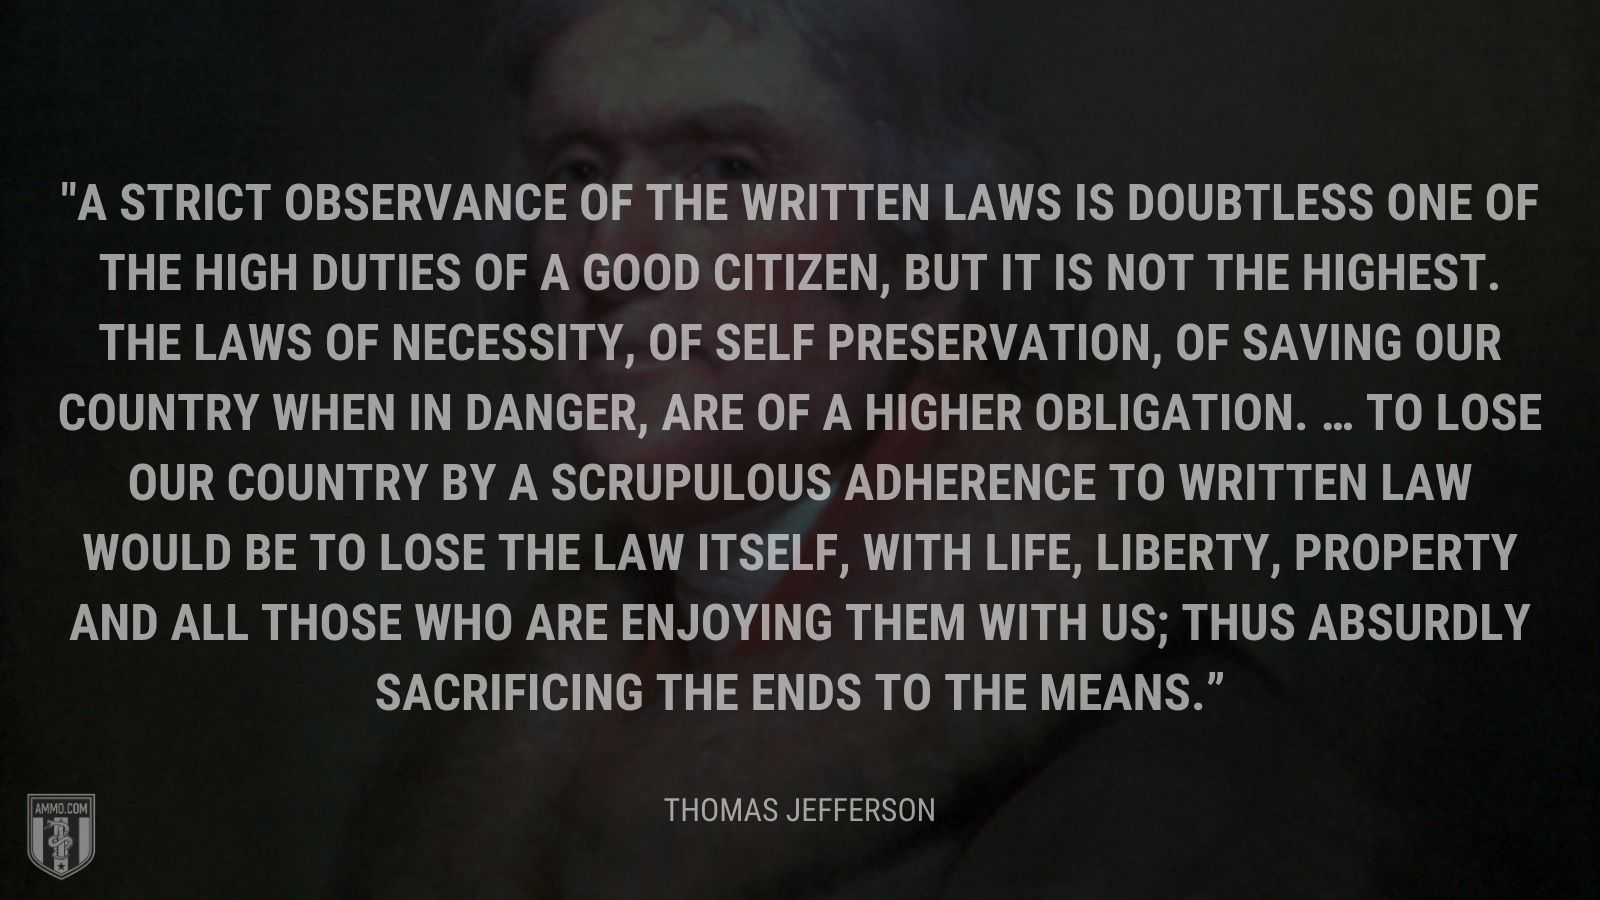 """A strict observance of the written laws is doubtless one of the high duties of a good citizen, but it is not the highest. The laws of necessity, of self preservation, of saving our country when in danger, are of a higher obligation. … To lose our country by a scrupulous adherence to written law would be to lose the law itself, with life, liberty, property and all those who are enjoying them with us; thus absurdly sacrificing the ends to the means."" - Thomas Jefferson"